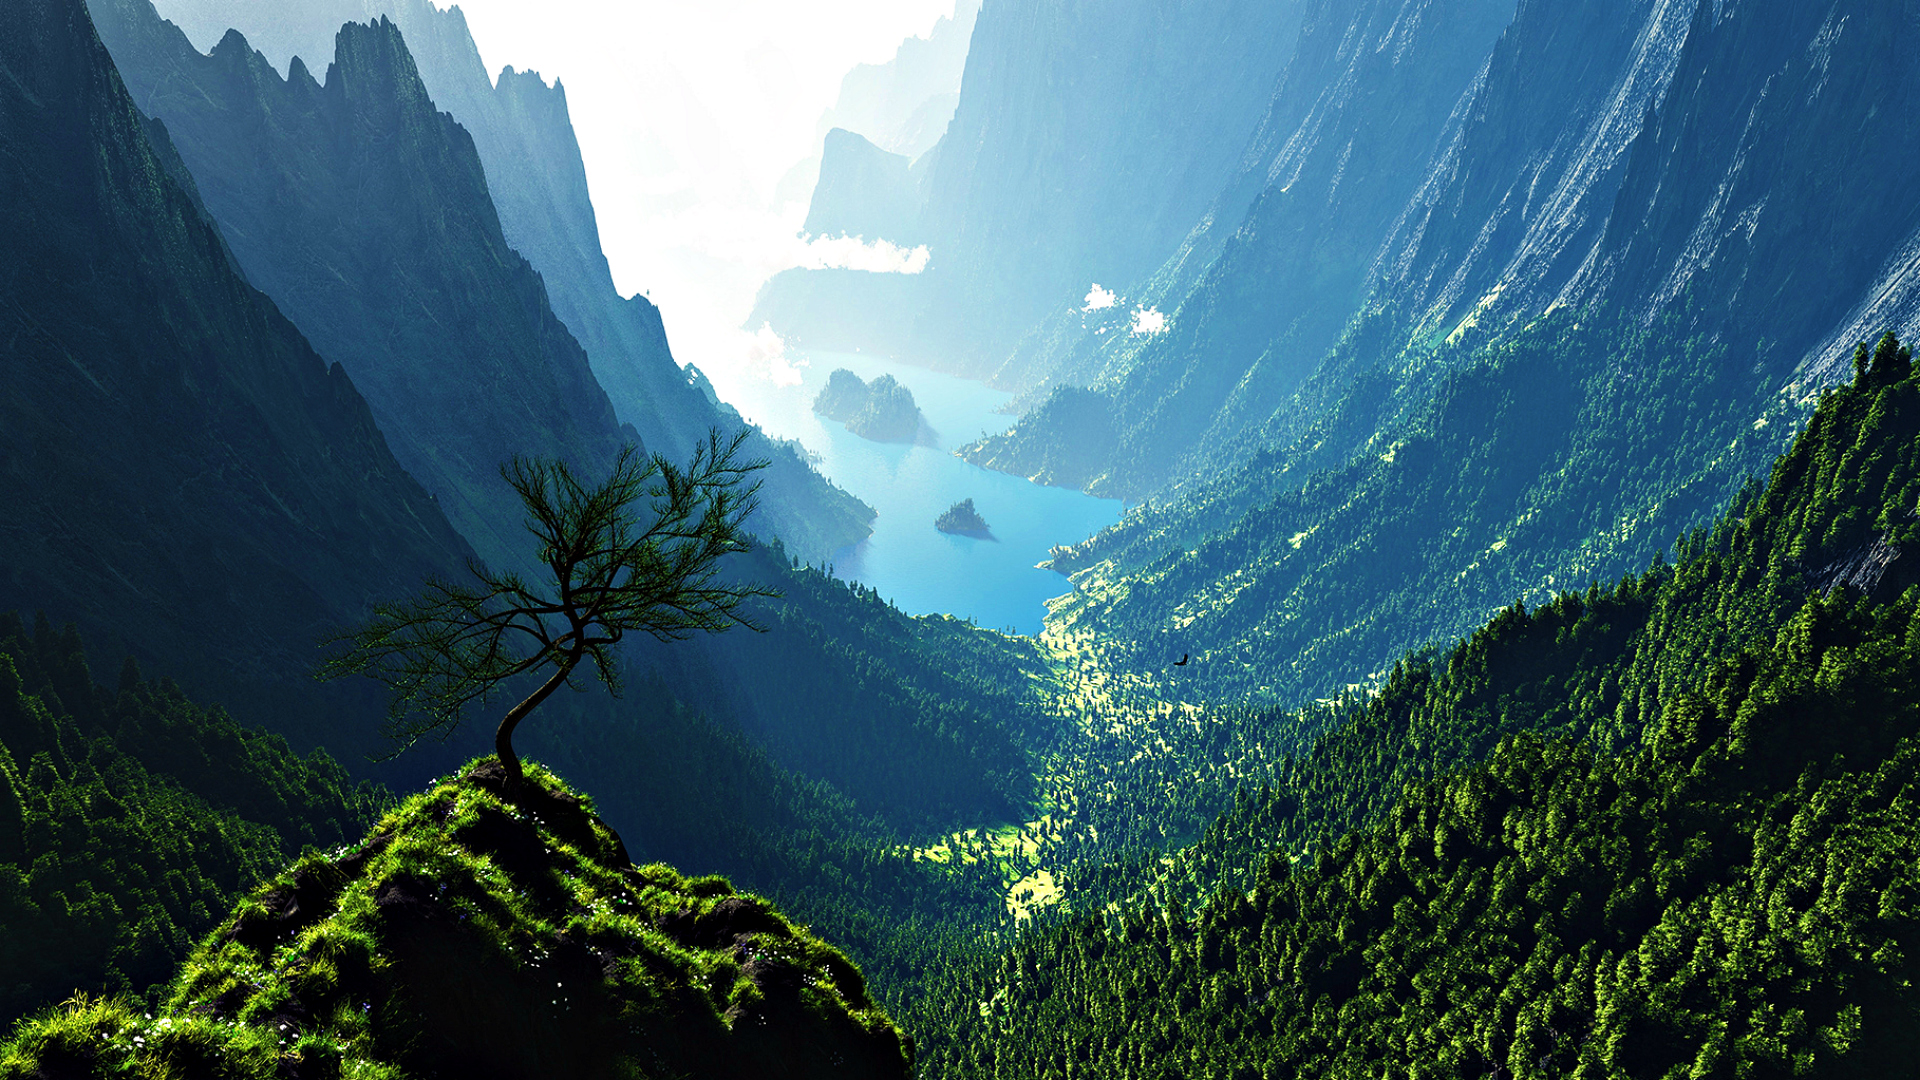 Valley of Mountain HD Wallpaper